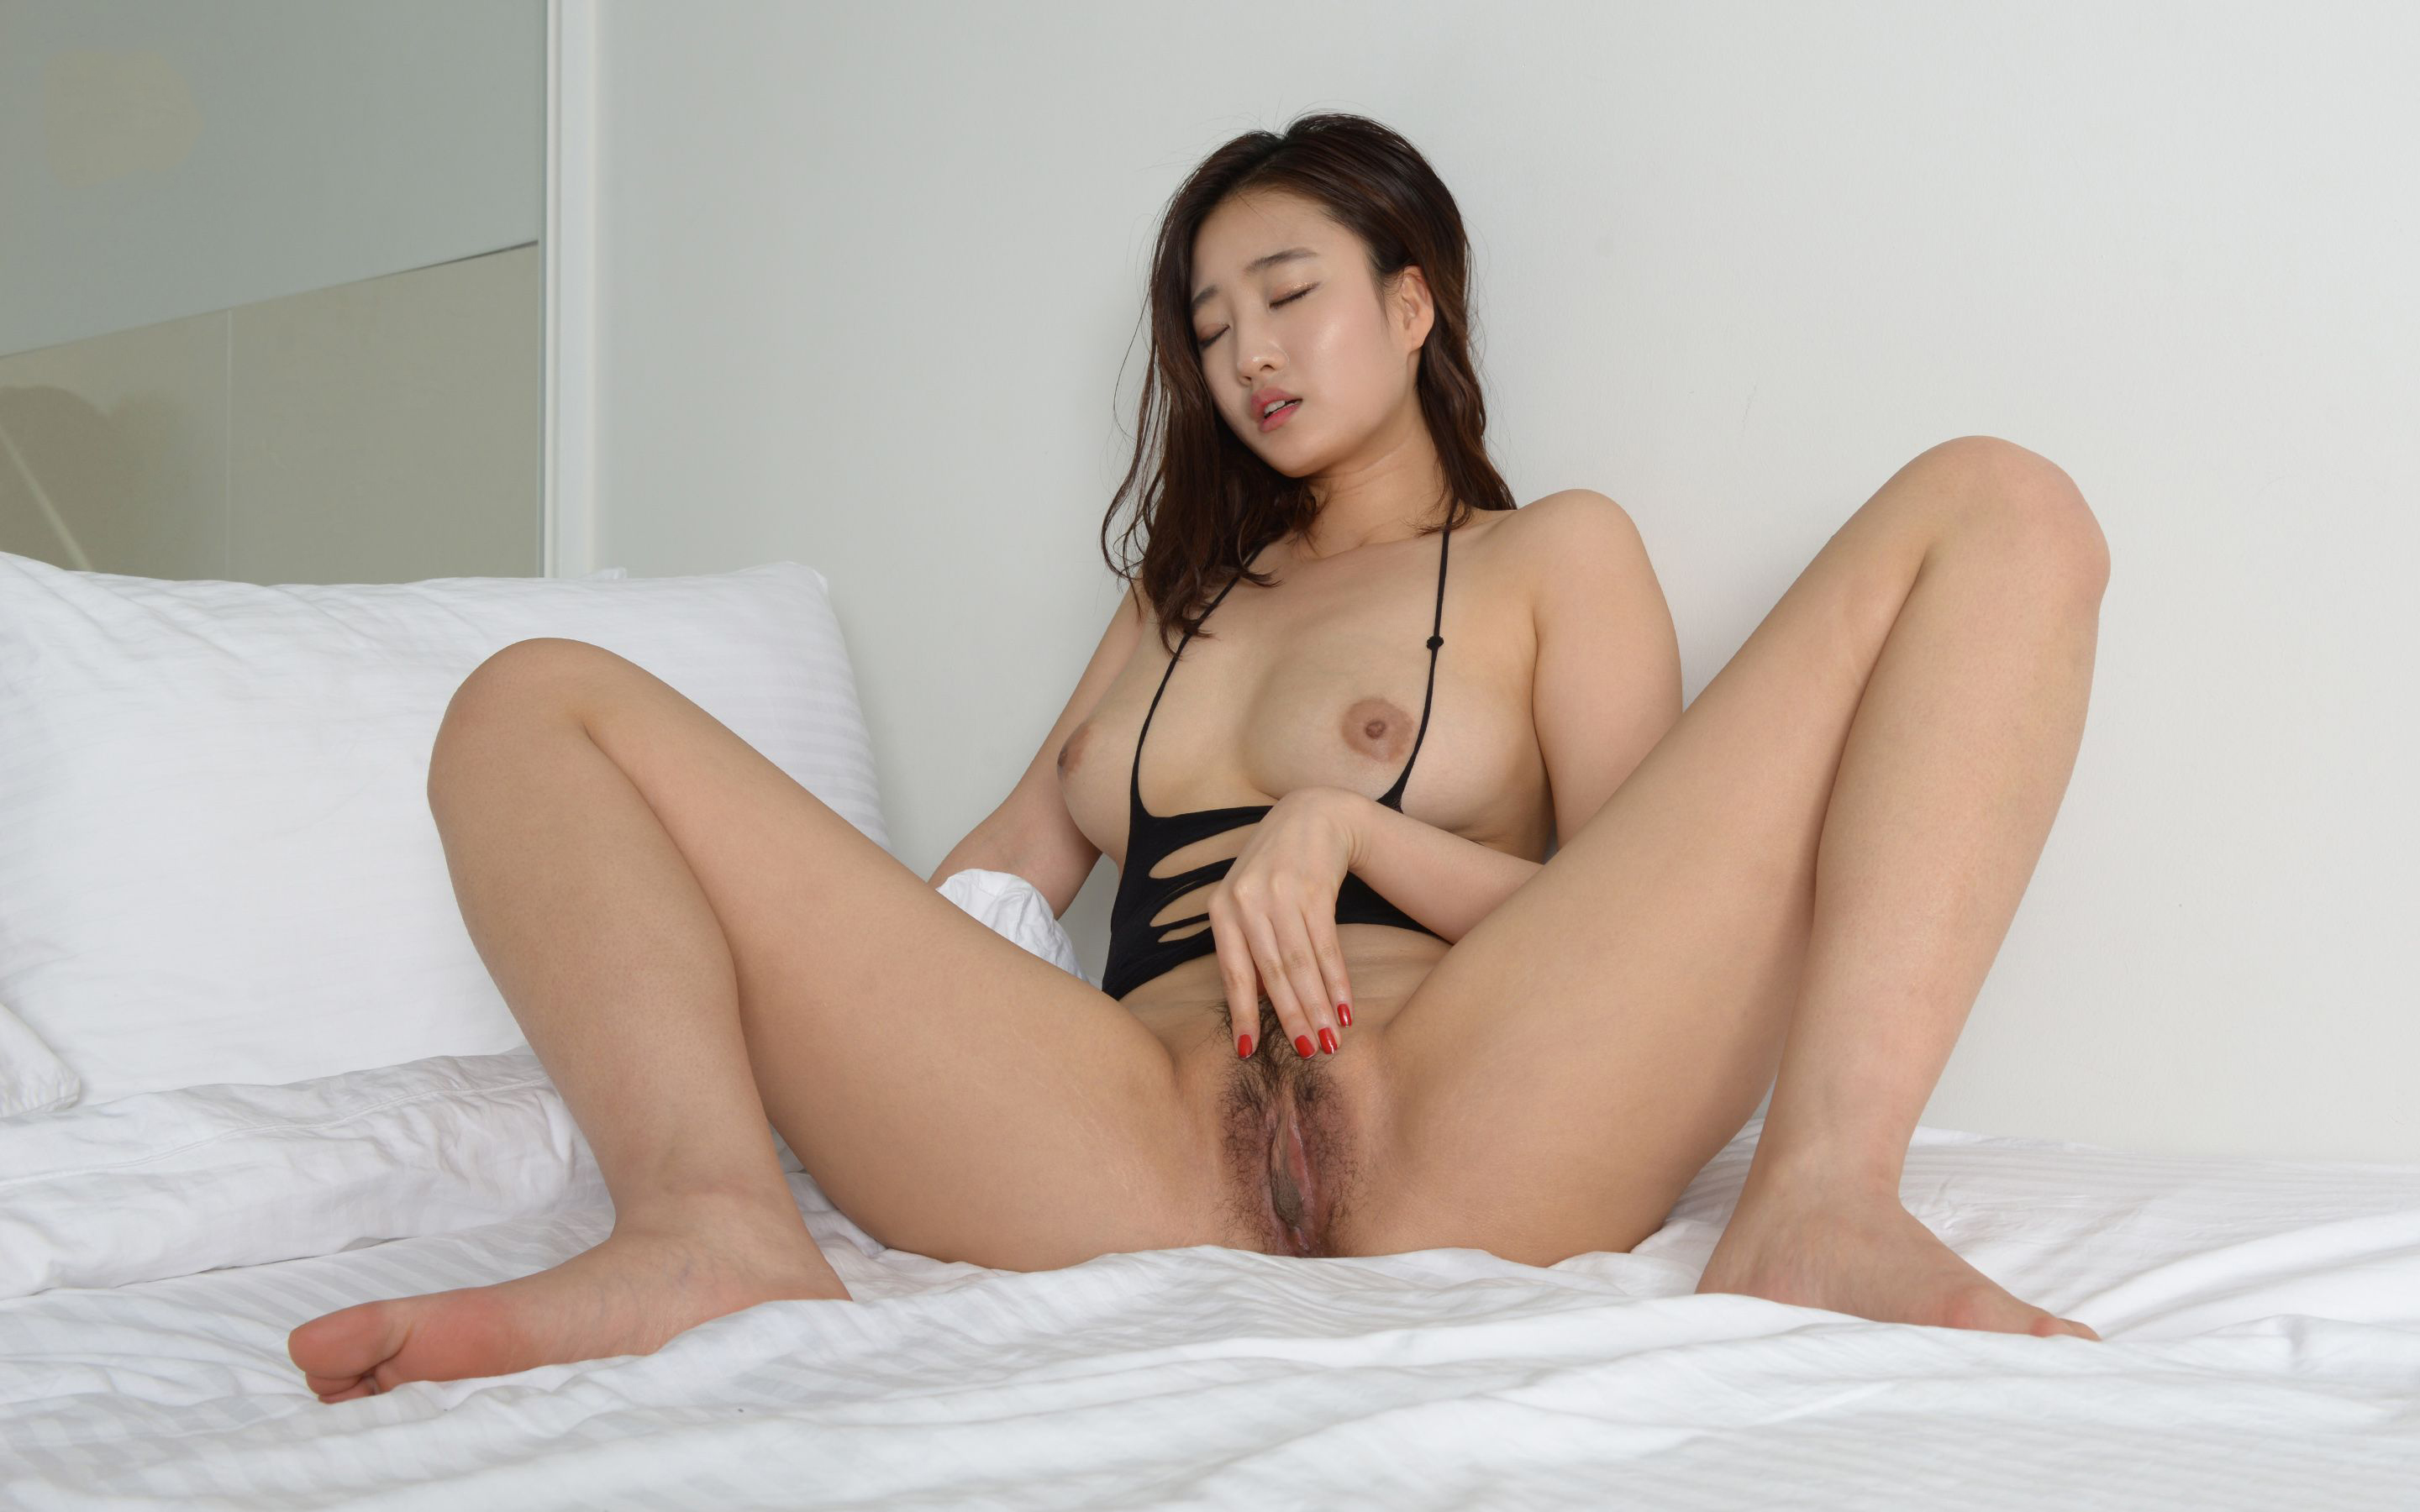 indonesian sexy nude model